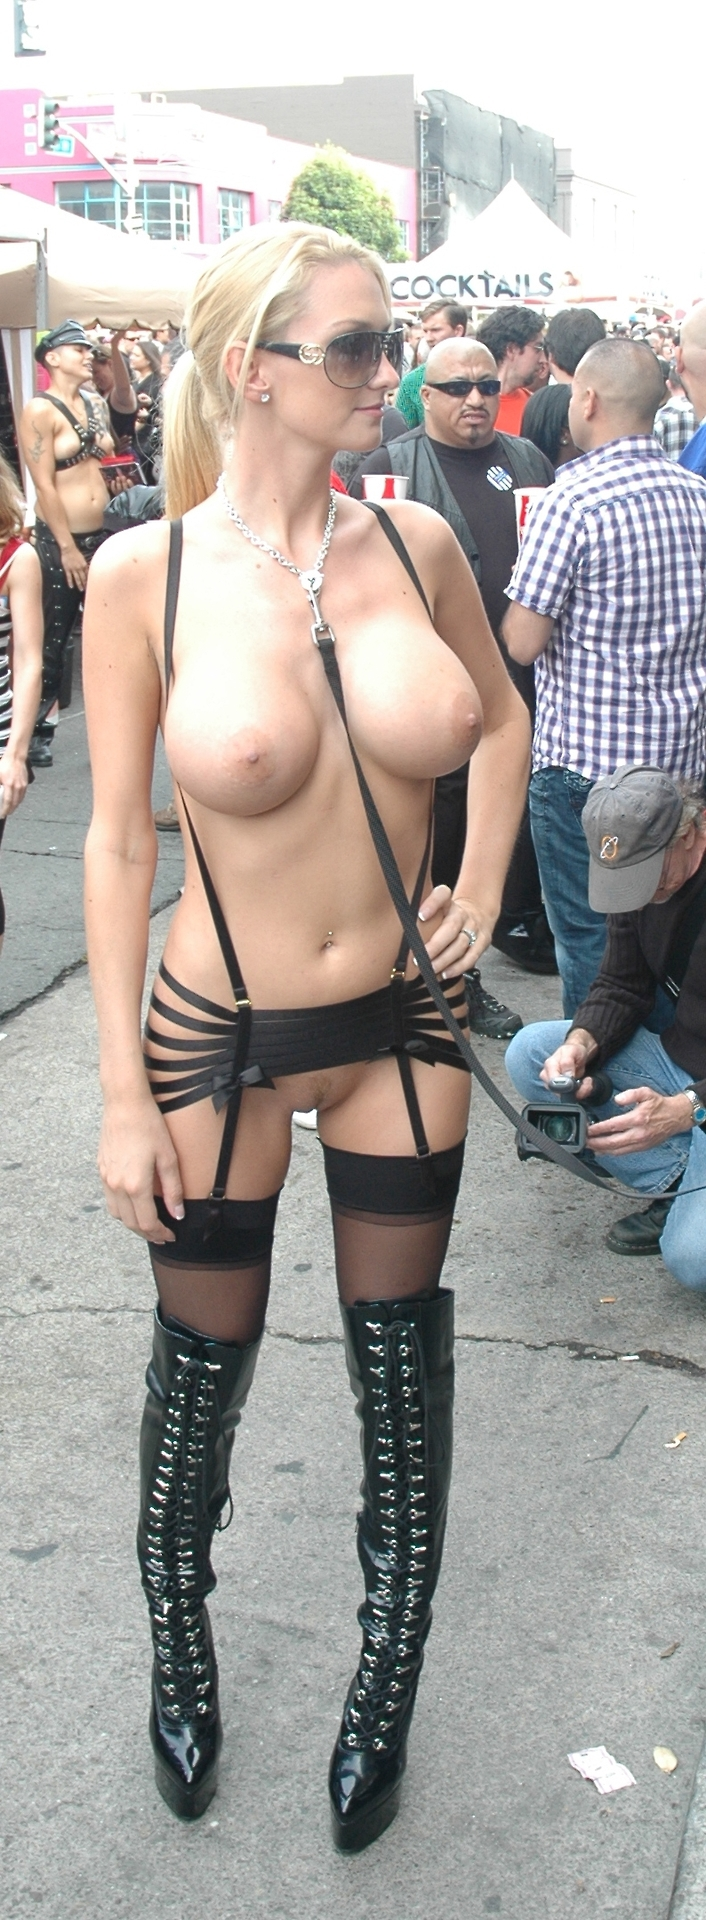 huge black cock stuffs horny wife #blackandwhite #busty #chains #closedeyes #collar #dreaming #firmtits #forrest #leash #nature #outdoors #outdoors #photography #submissive